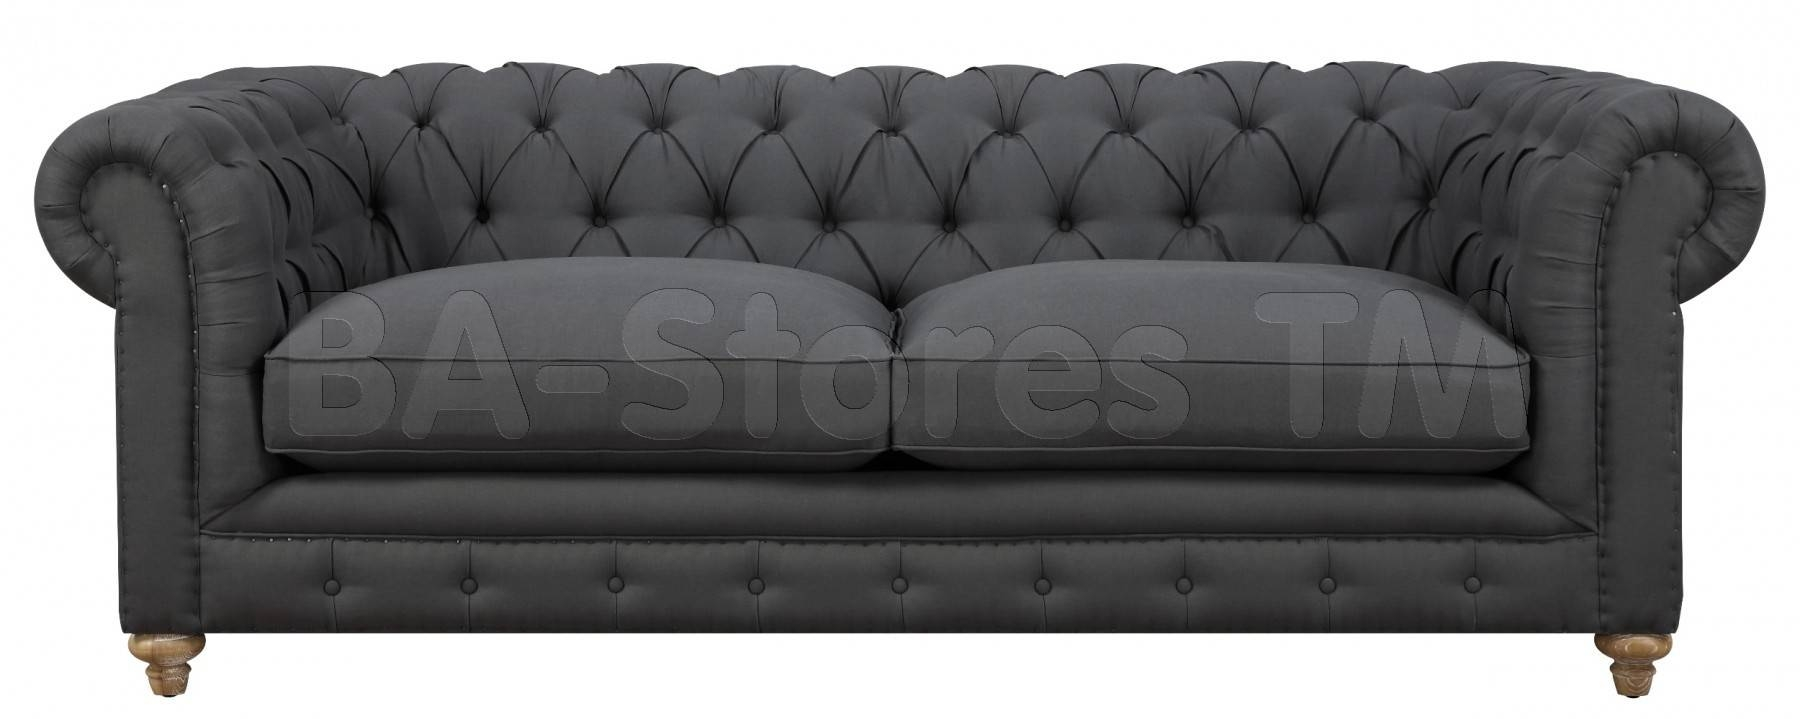 Sofas: Oxford Grey Linen Sofa Tov-S34/6 - Ba Stores for Tufted Linen Sofas (Image 26 of 30)